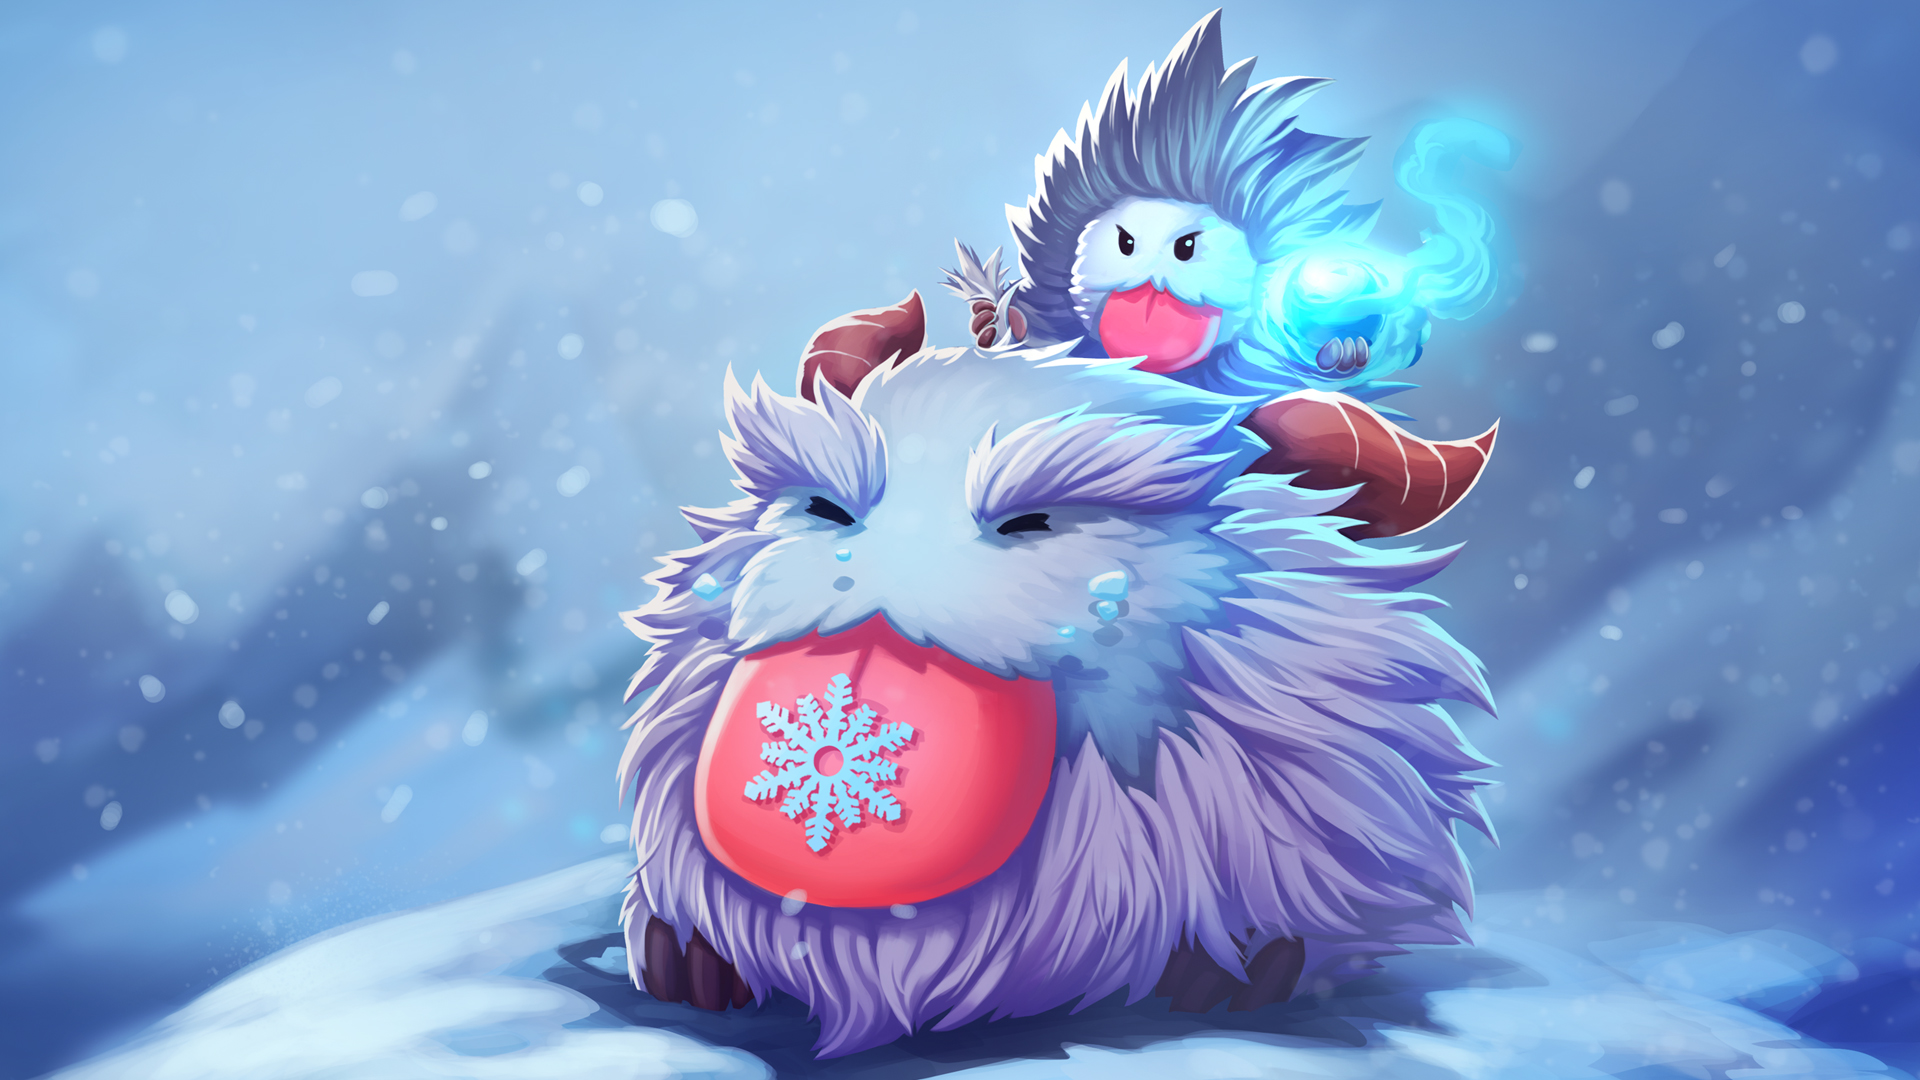 Nunu Poro wallpaper